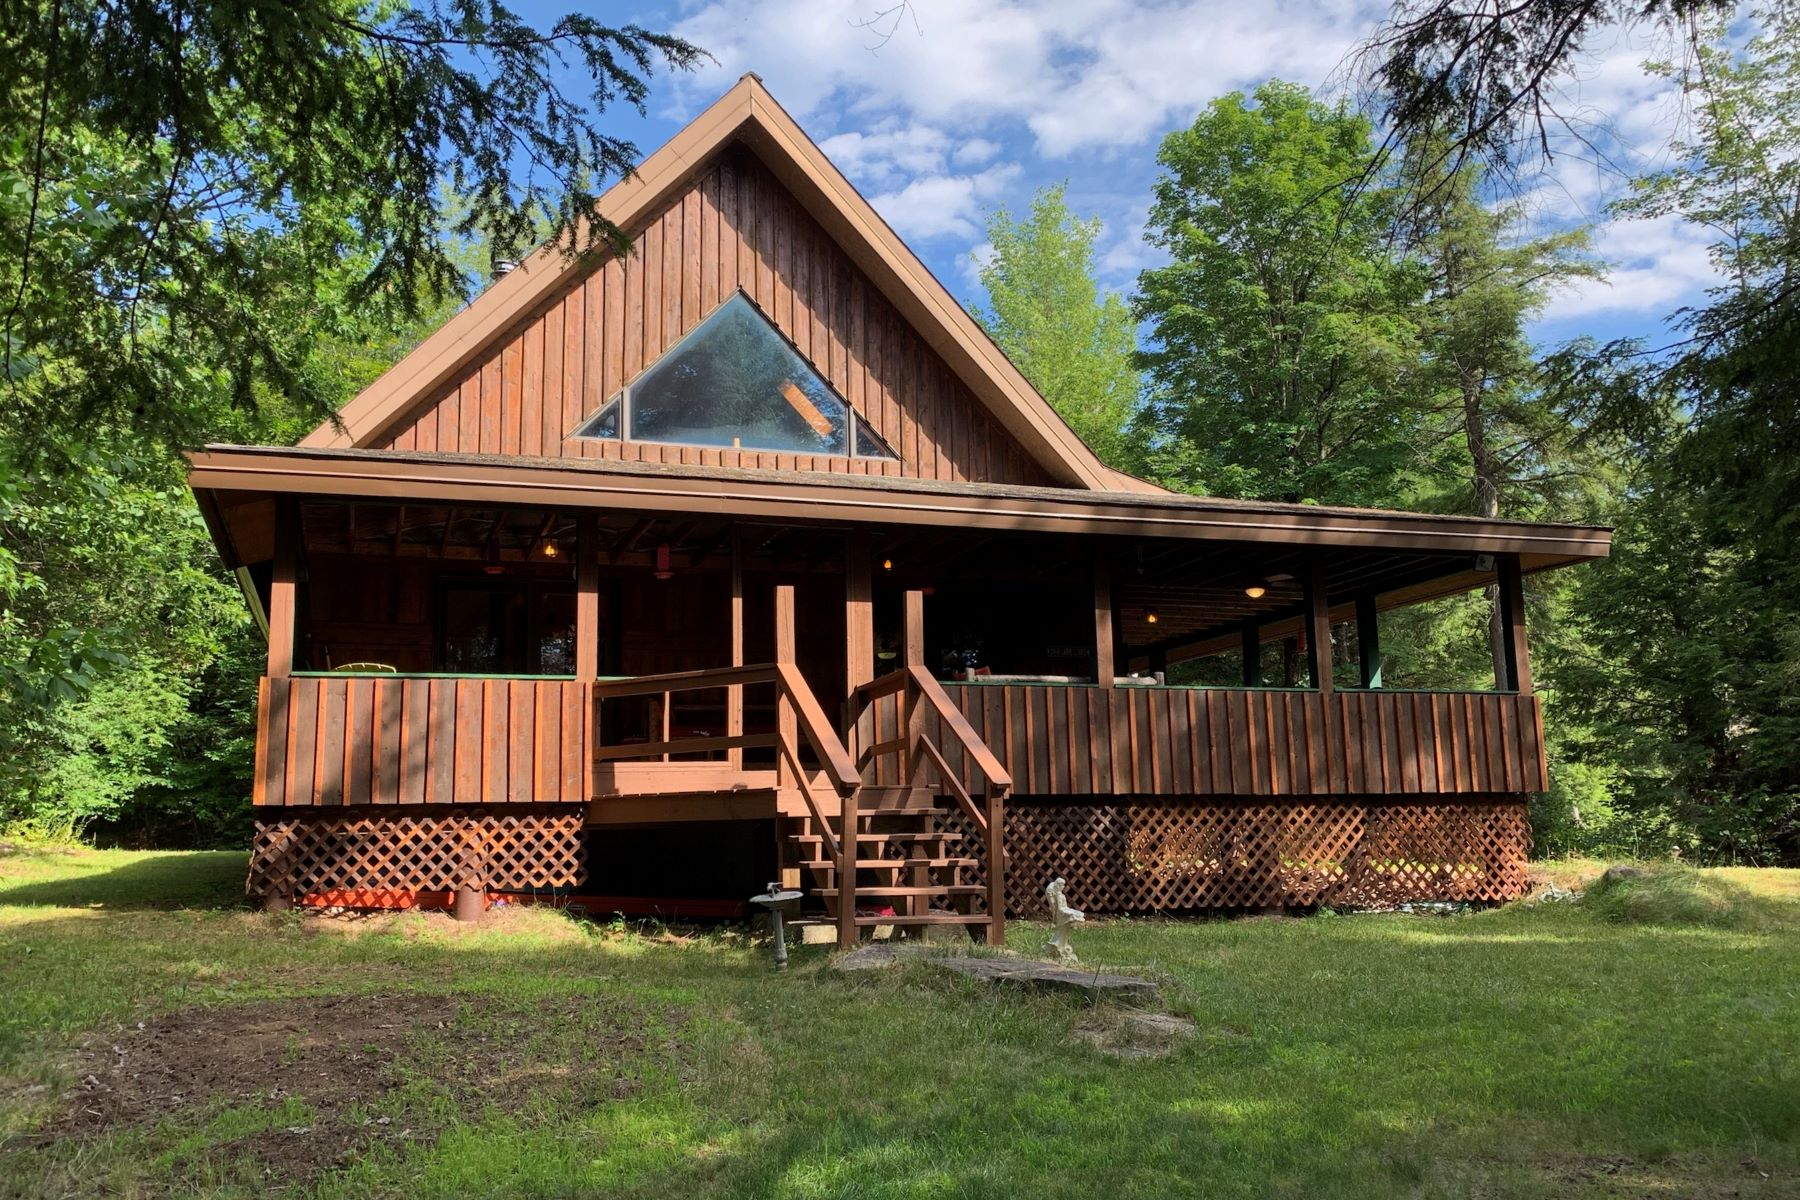 Single Family Homes for Sale at Serenity Calls from this Custom Built Home 316 Beaver Dam Rd. Schroon Lake, New York 12870 United States